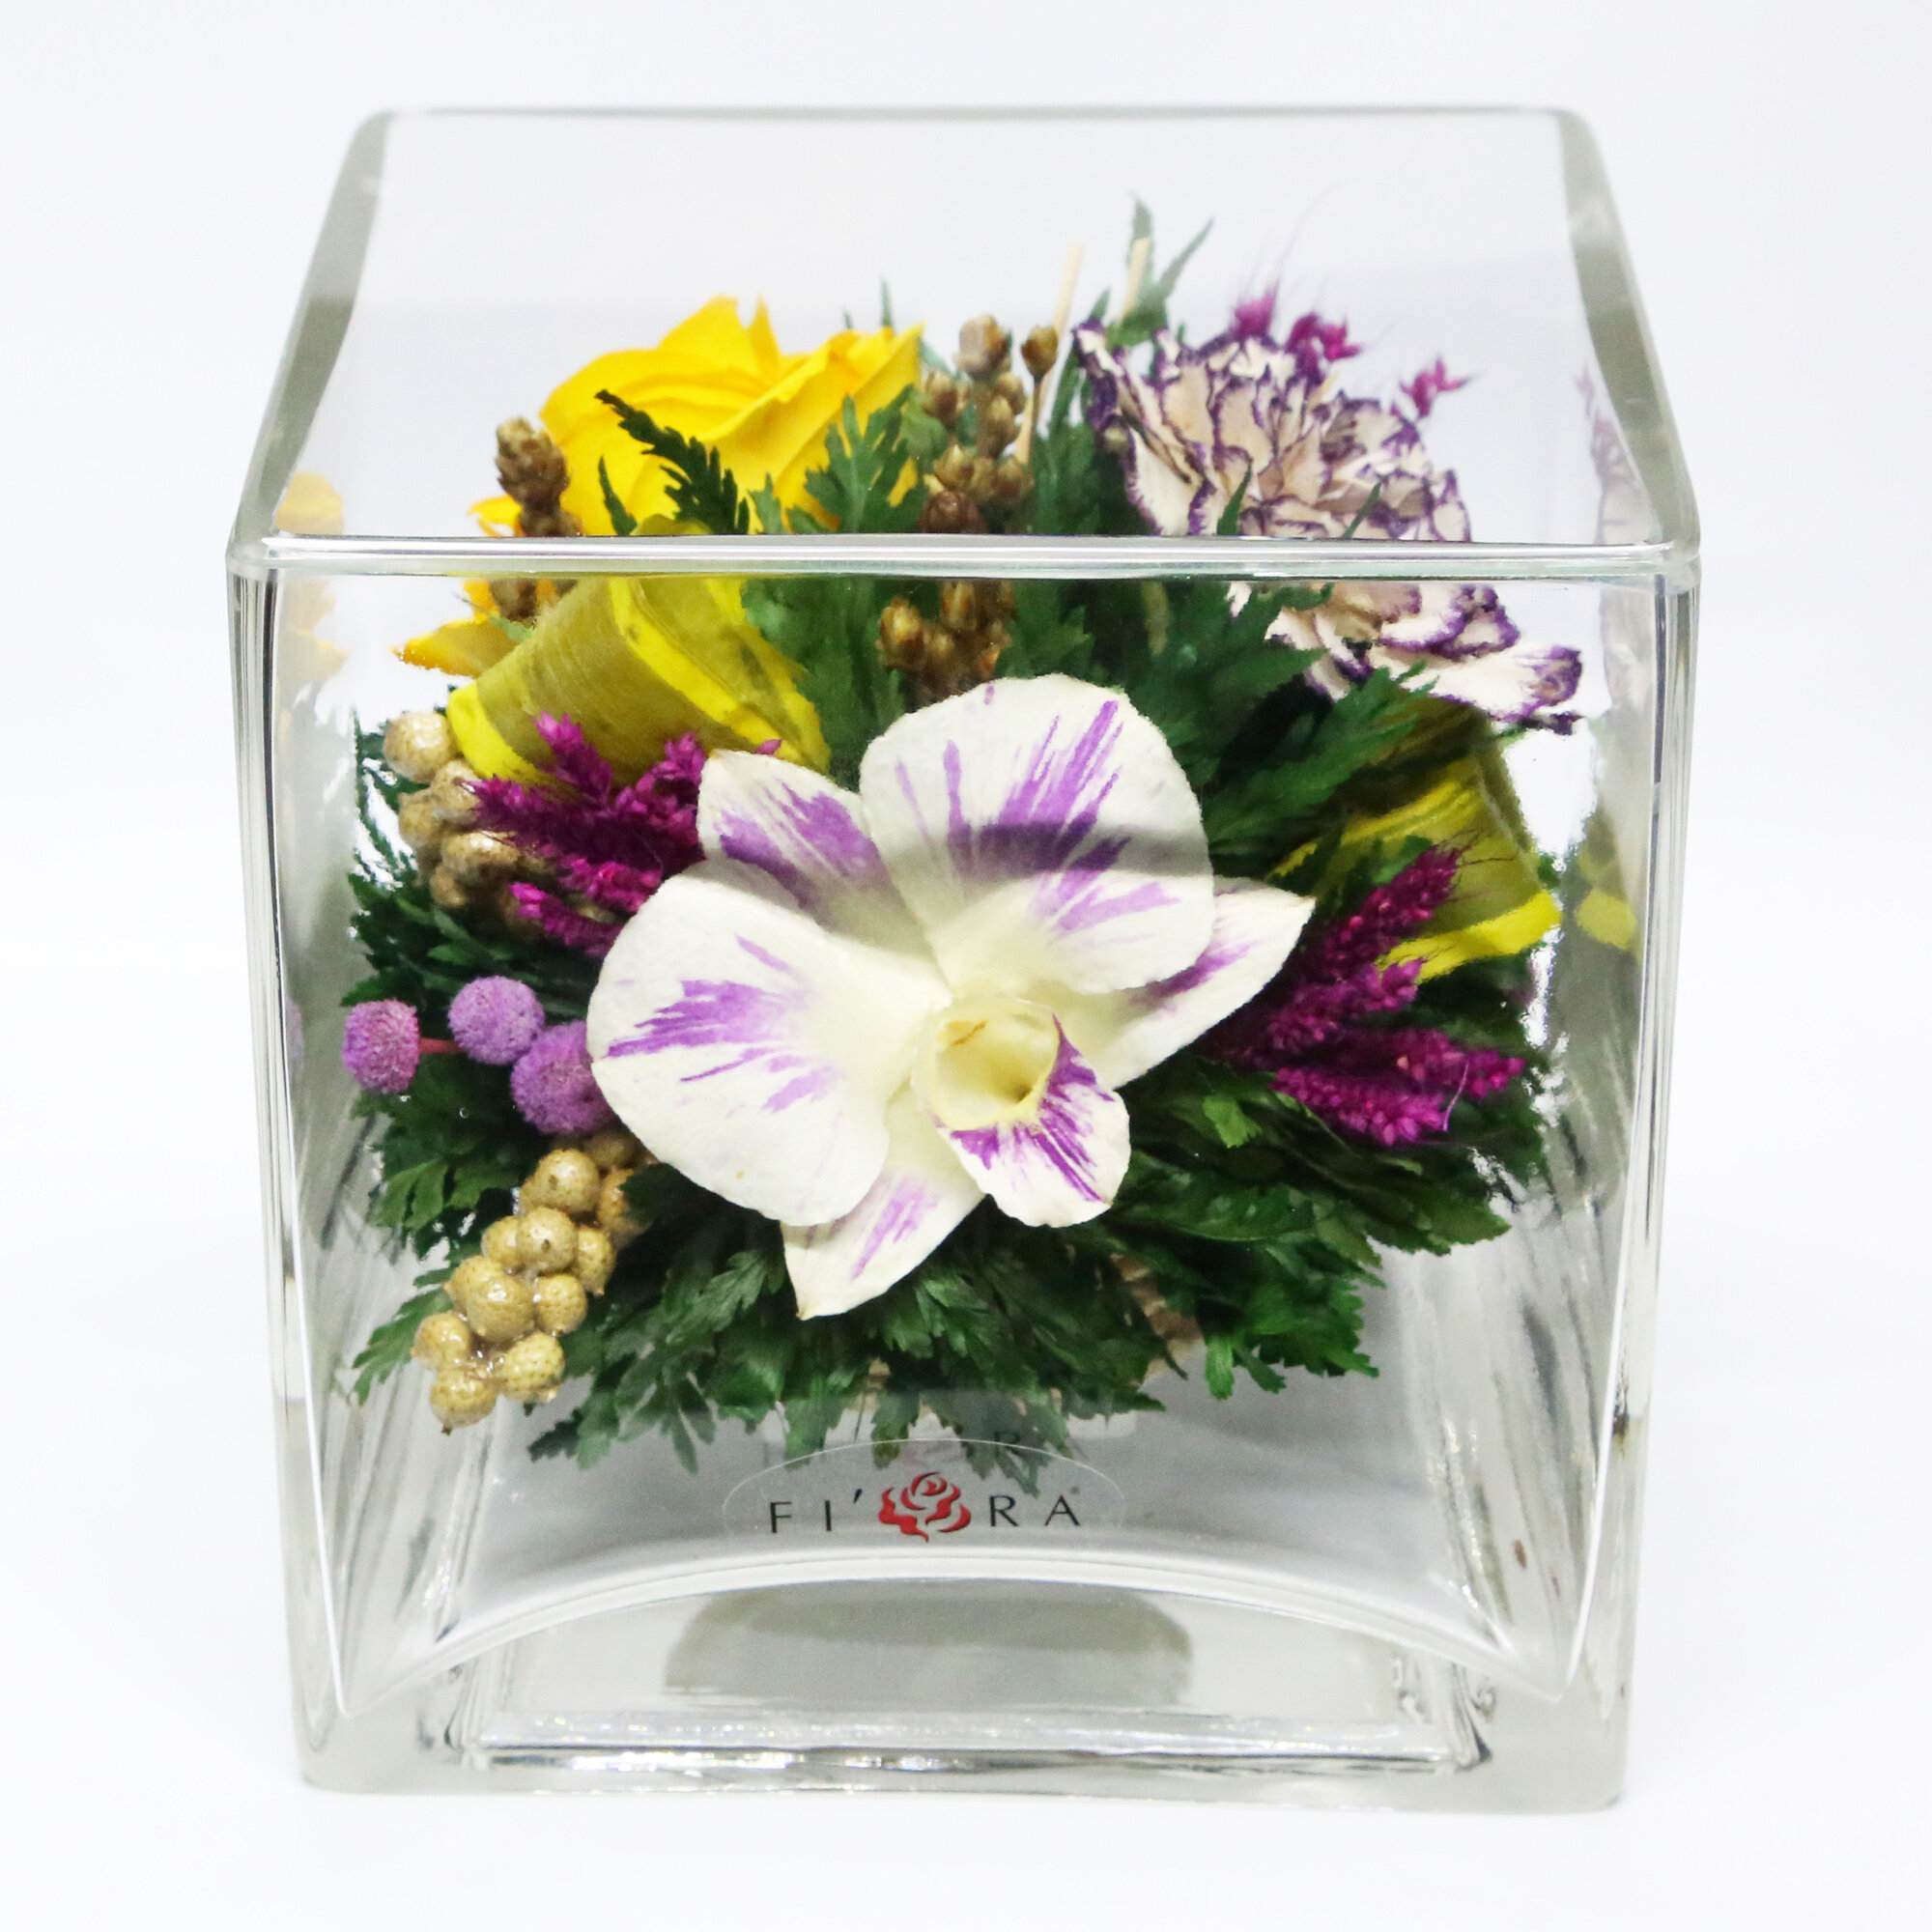 Bay Isle Home Mixed Floral Arrangements And Centerpiece In Decorative Vase